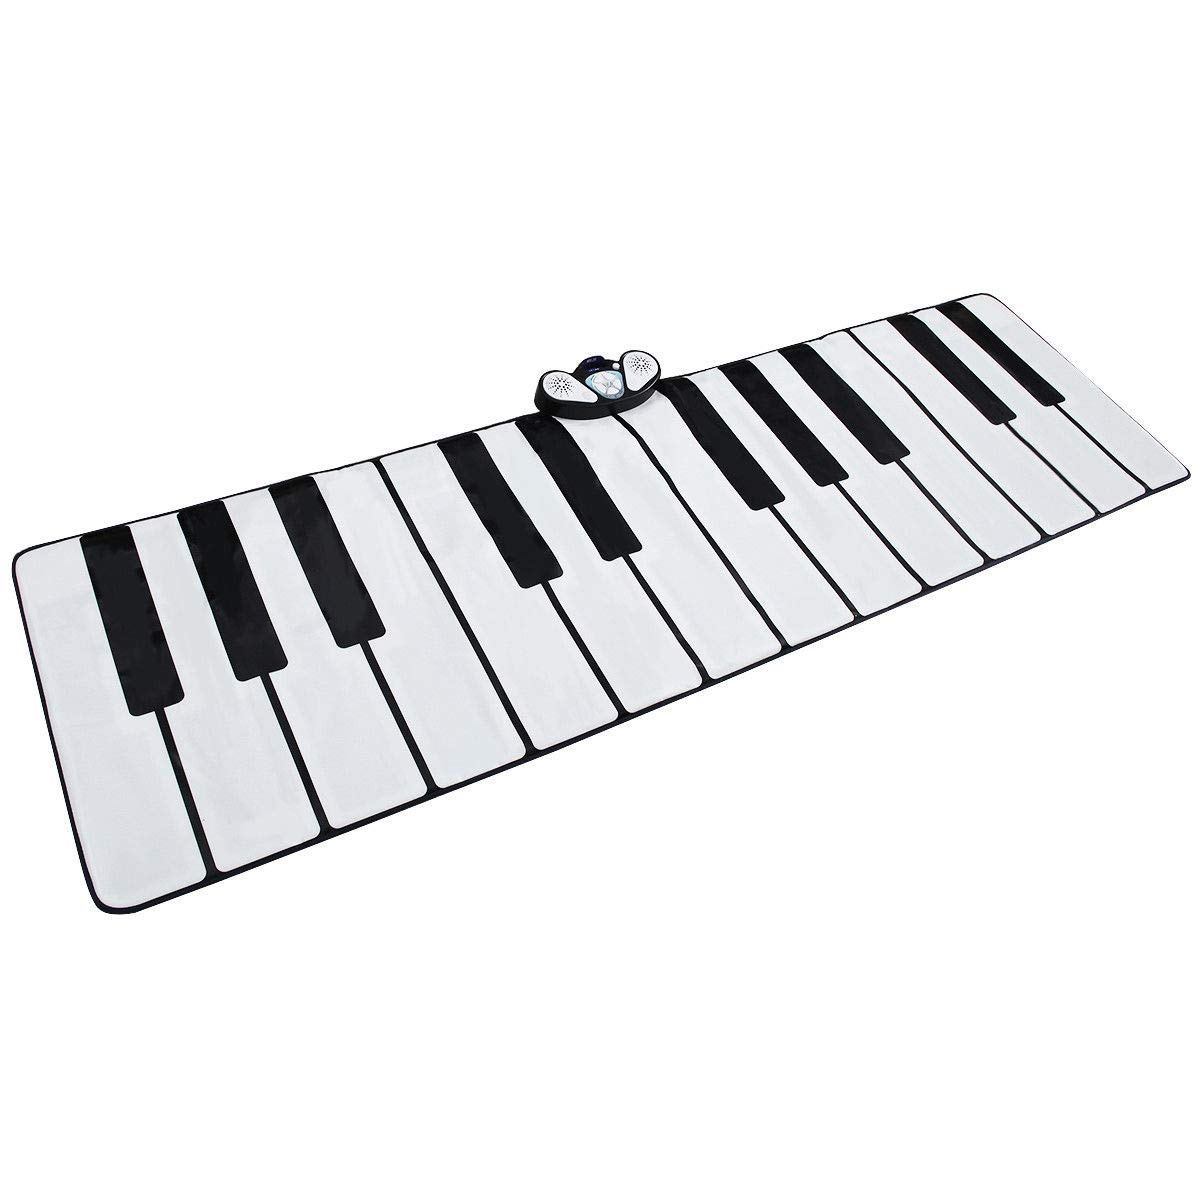 FDInspiration 24-Key Kids Keyboard Dance Gigantic Piano Playmat w/ Cable with Ebook by FDInspiration (Image #1)